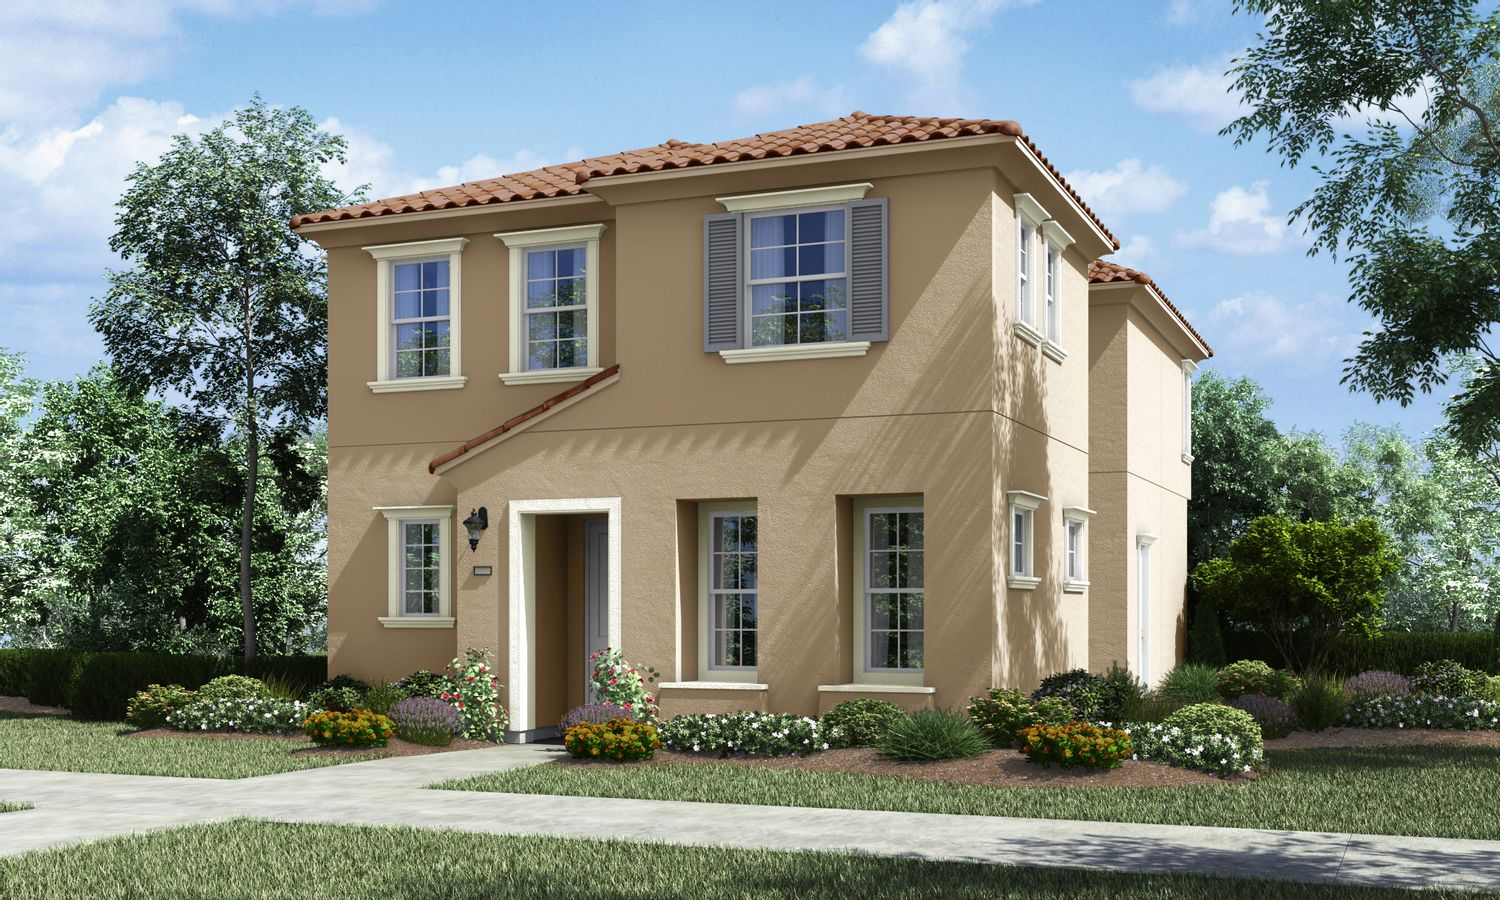 Single Family for Sale at Tribella - Classic Residence 2 1206 N. Harbor Blvd Santa Ana, California 92703 United States